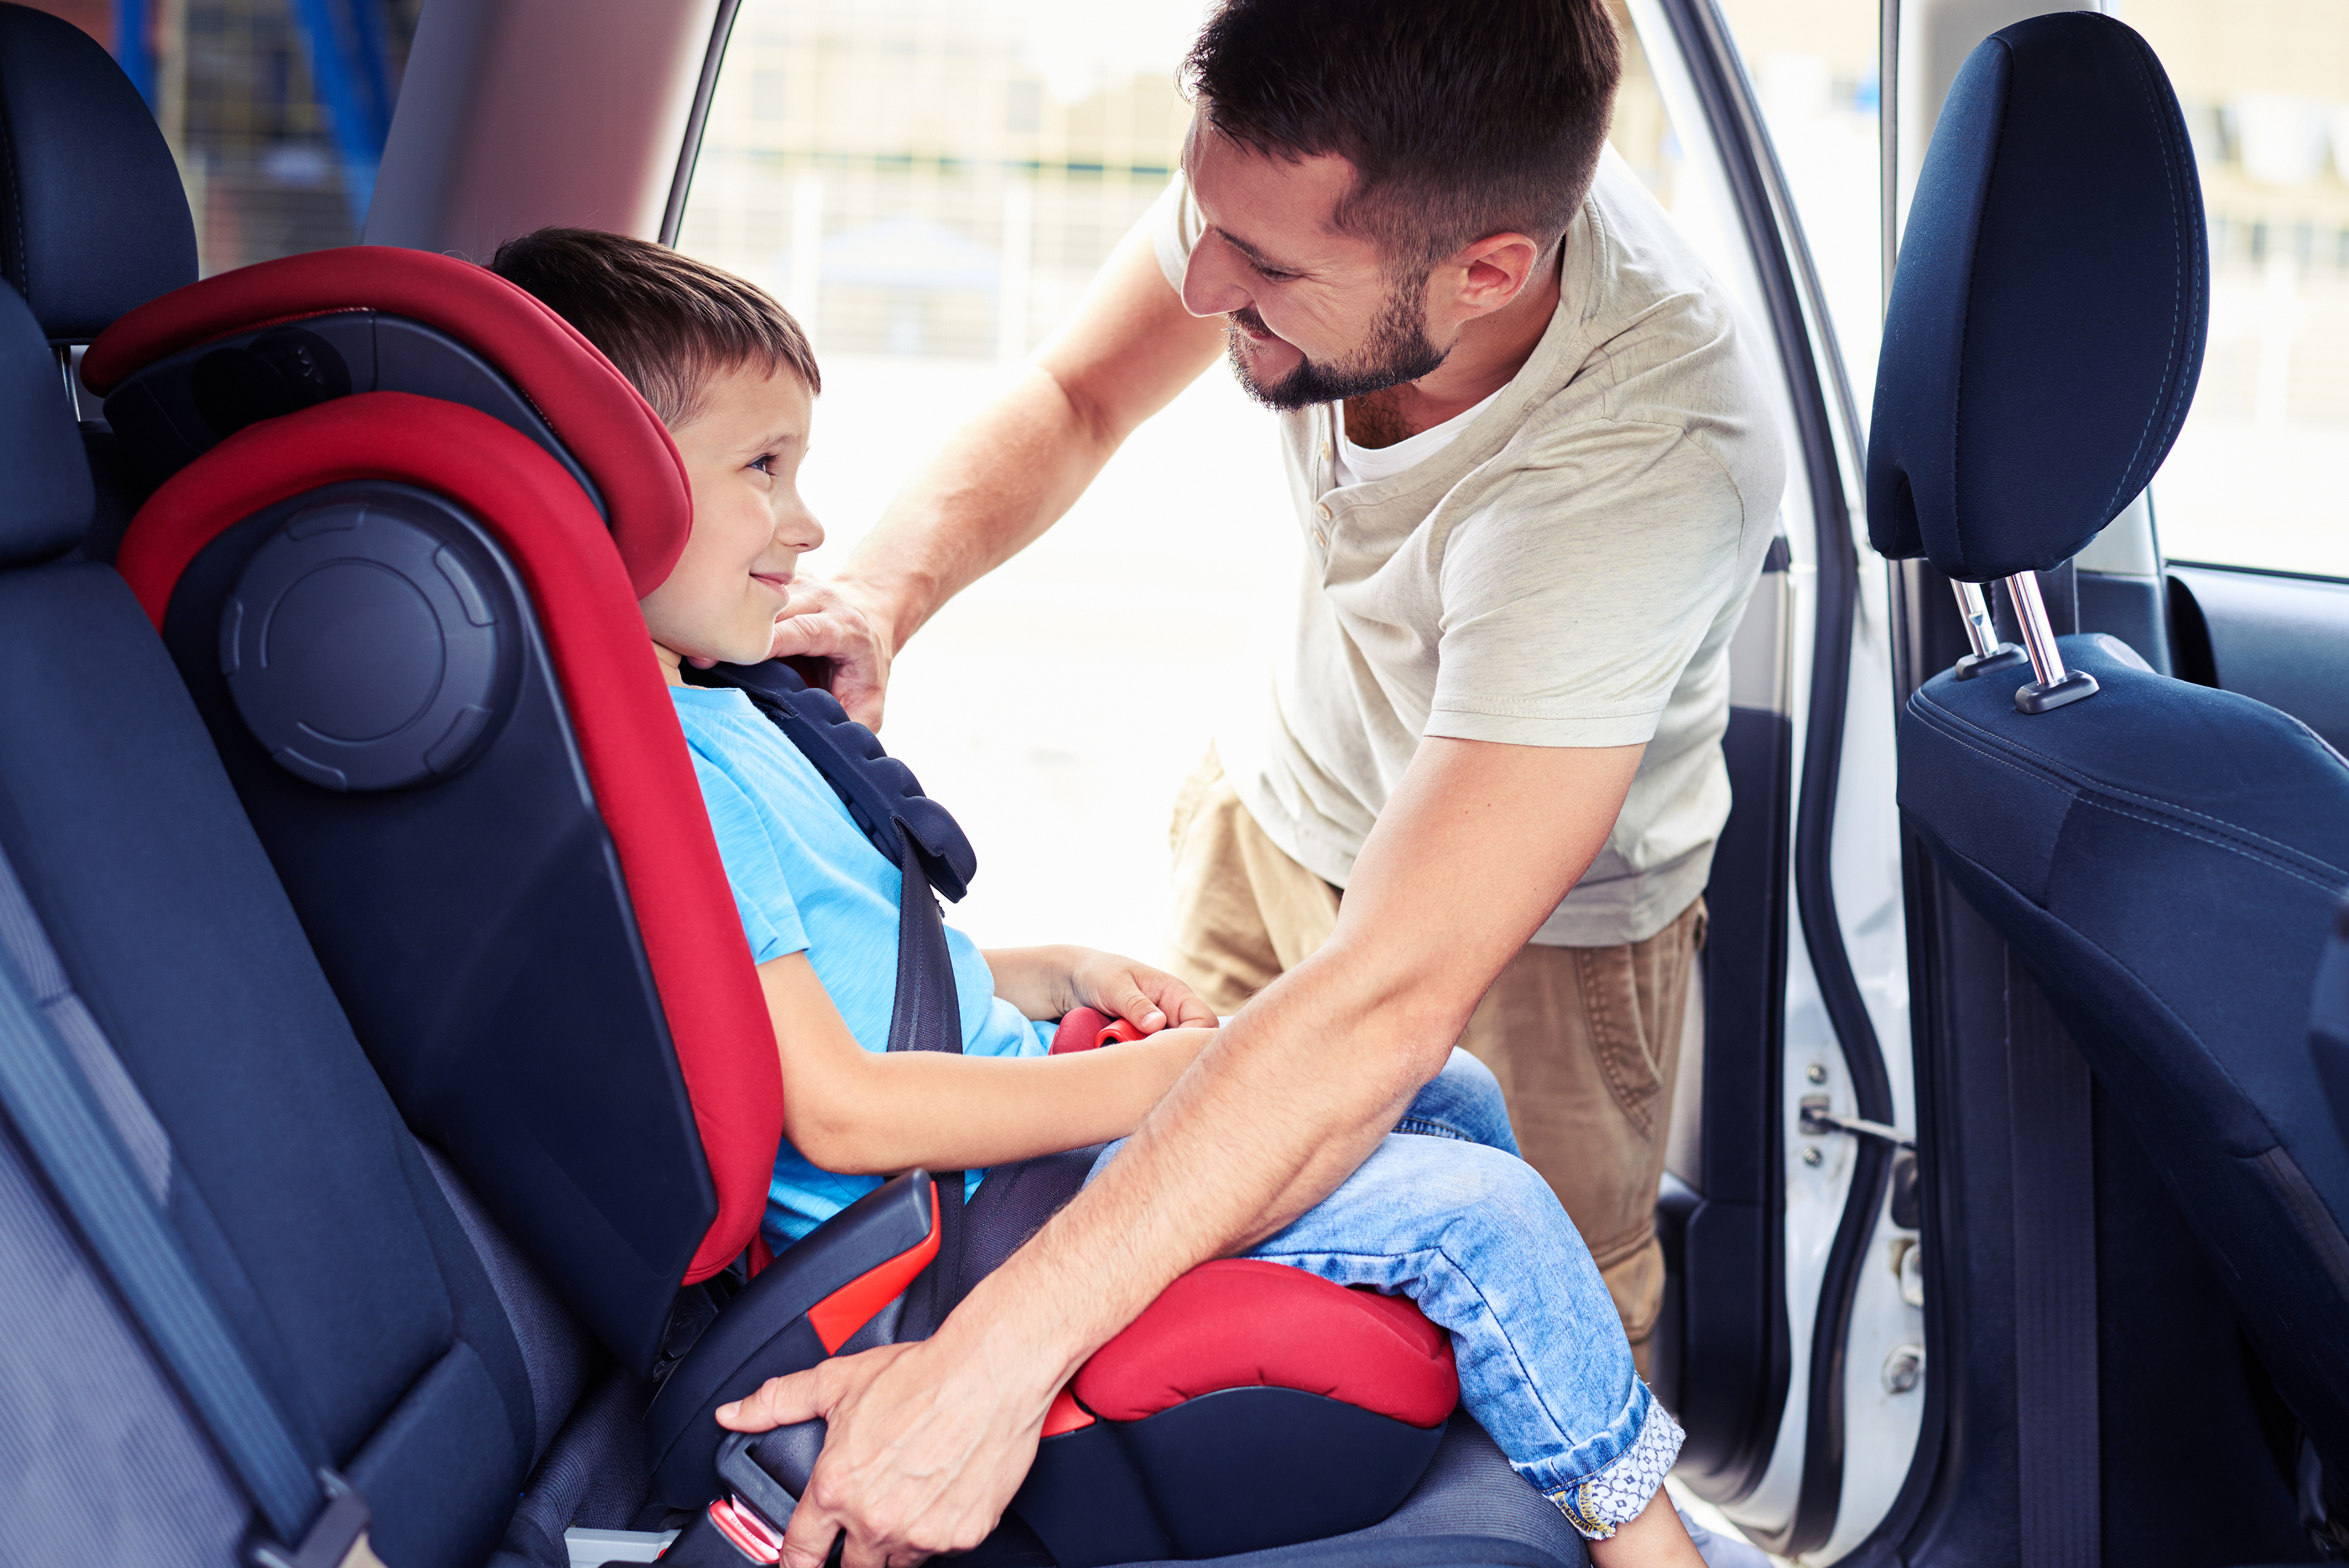 Child Car Seat Age Guidelines In Arizona